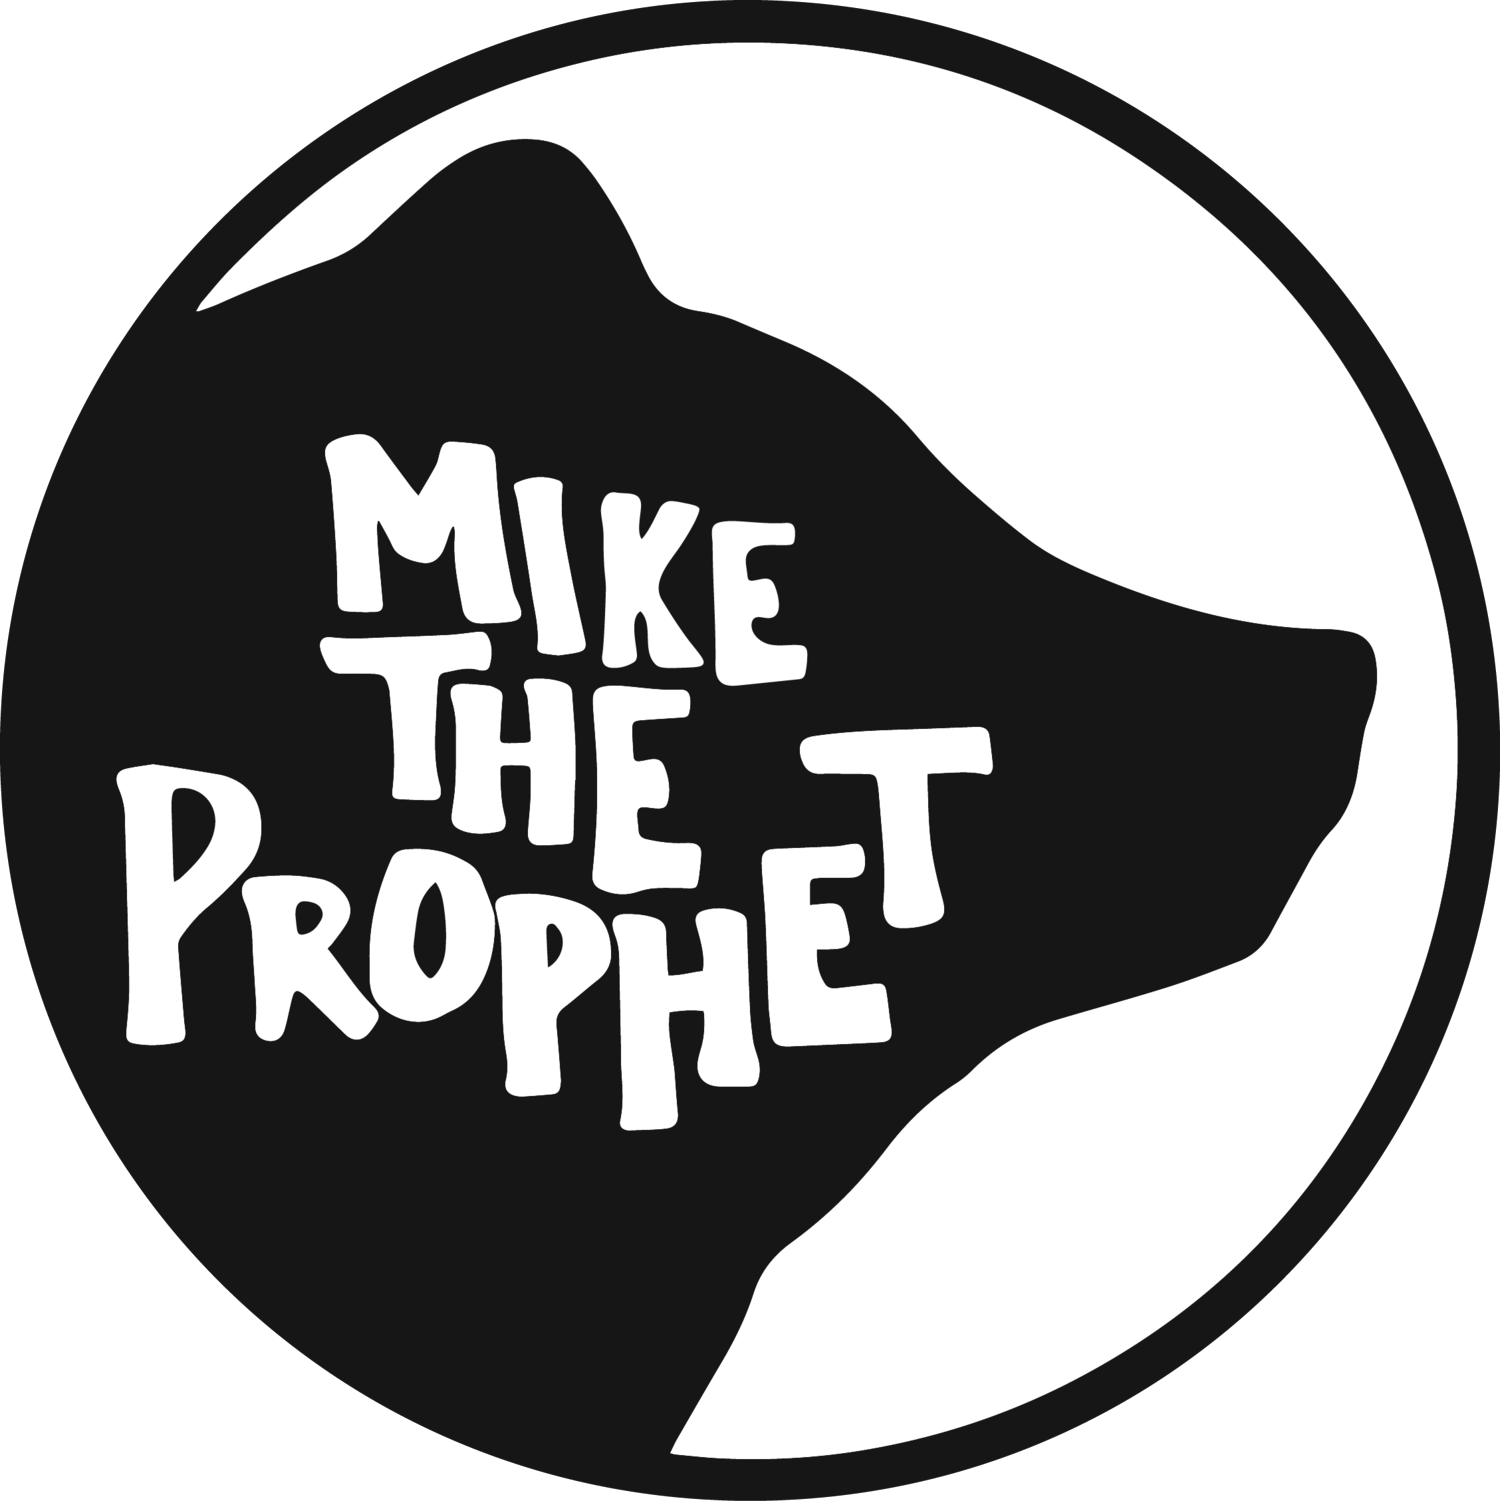 Mike the Prophet